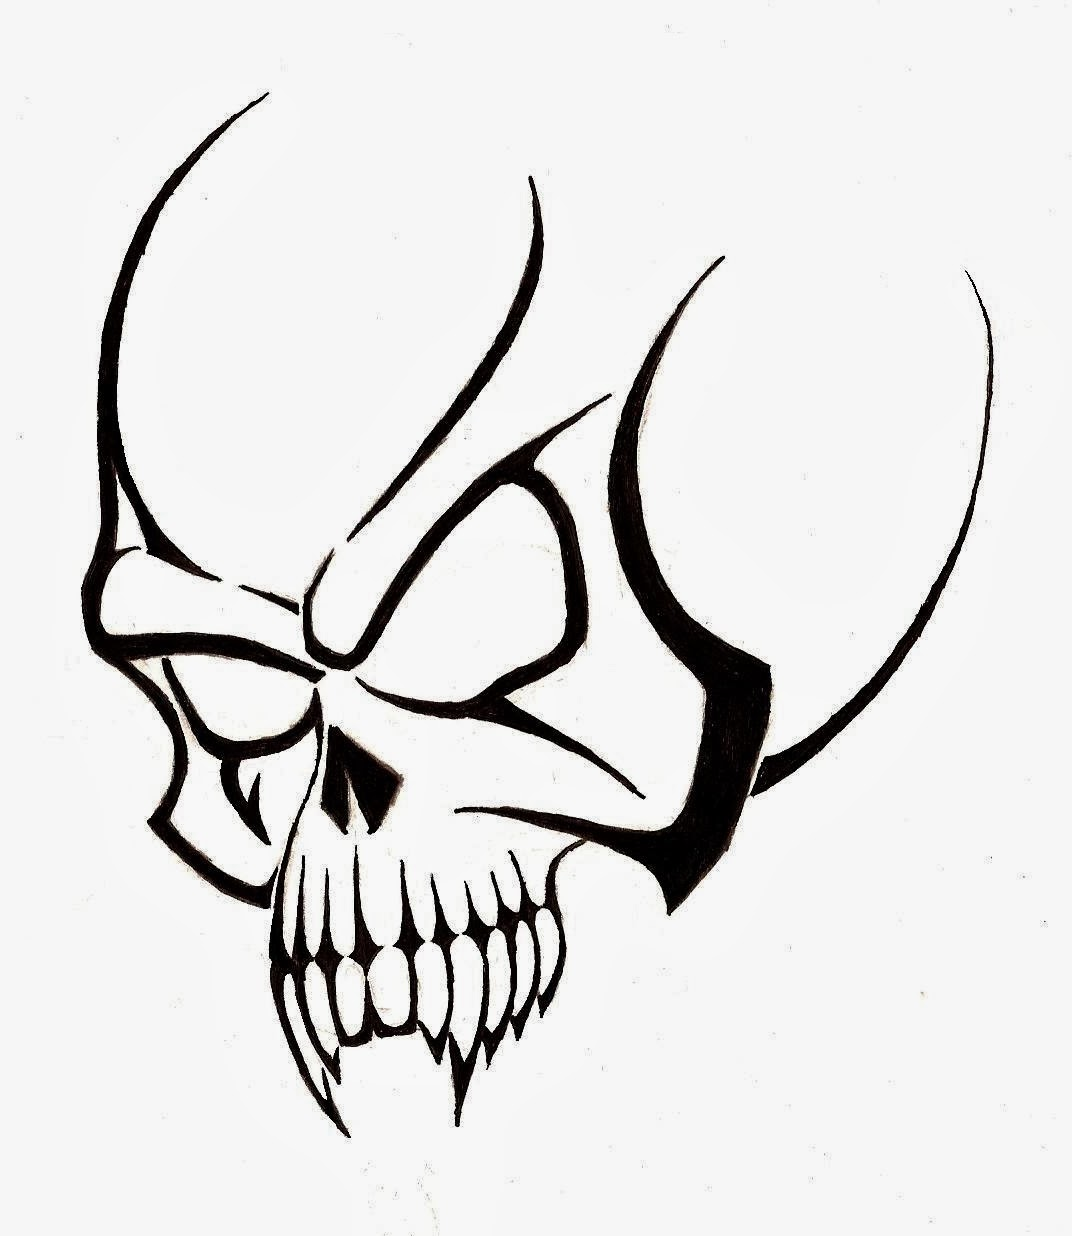 Free skull tattoo designs to print - Free Skull Tattoo Designs To Print 21